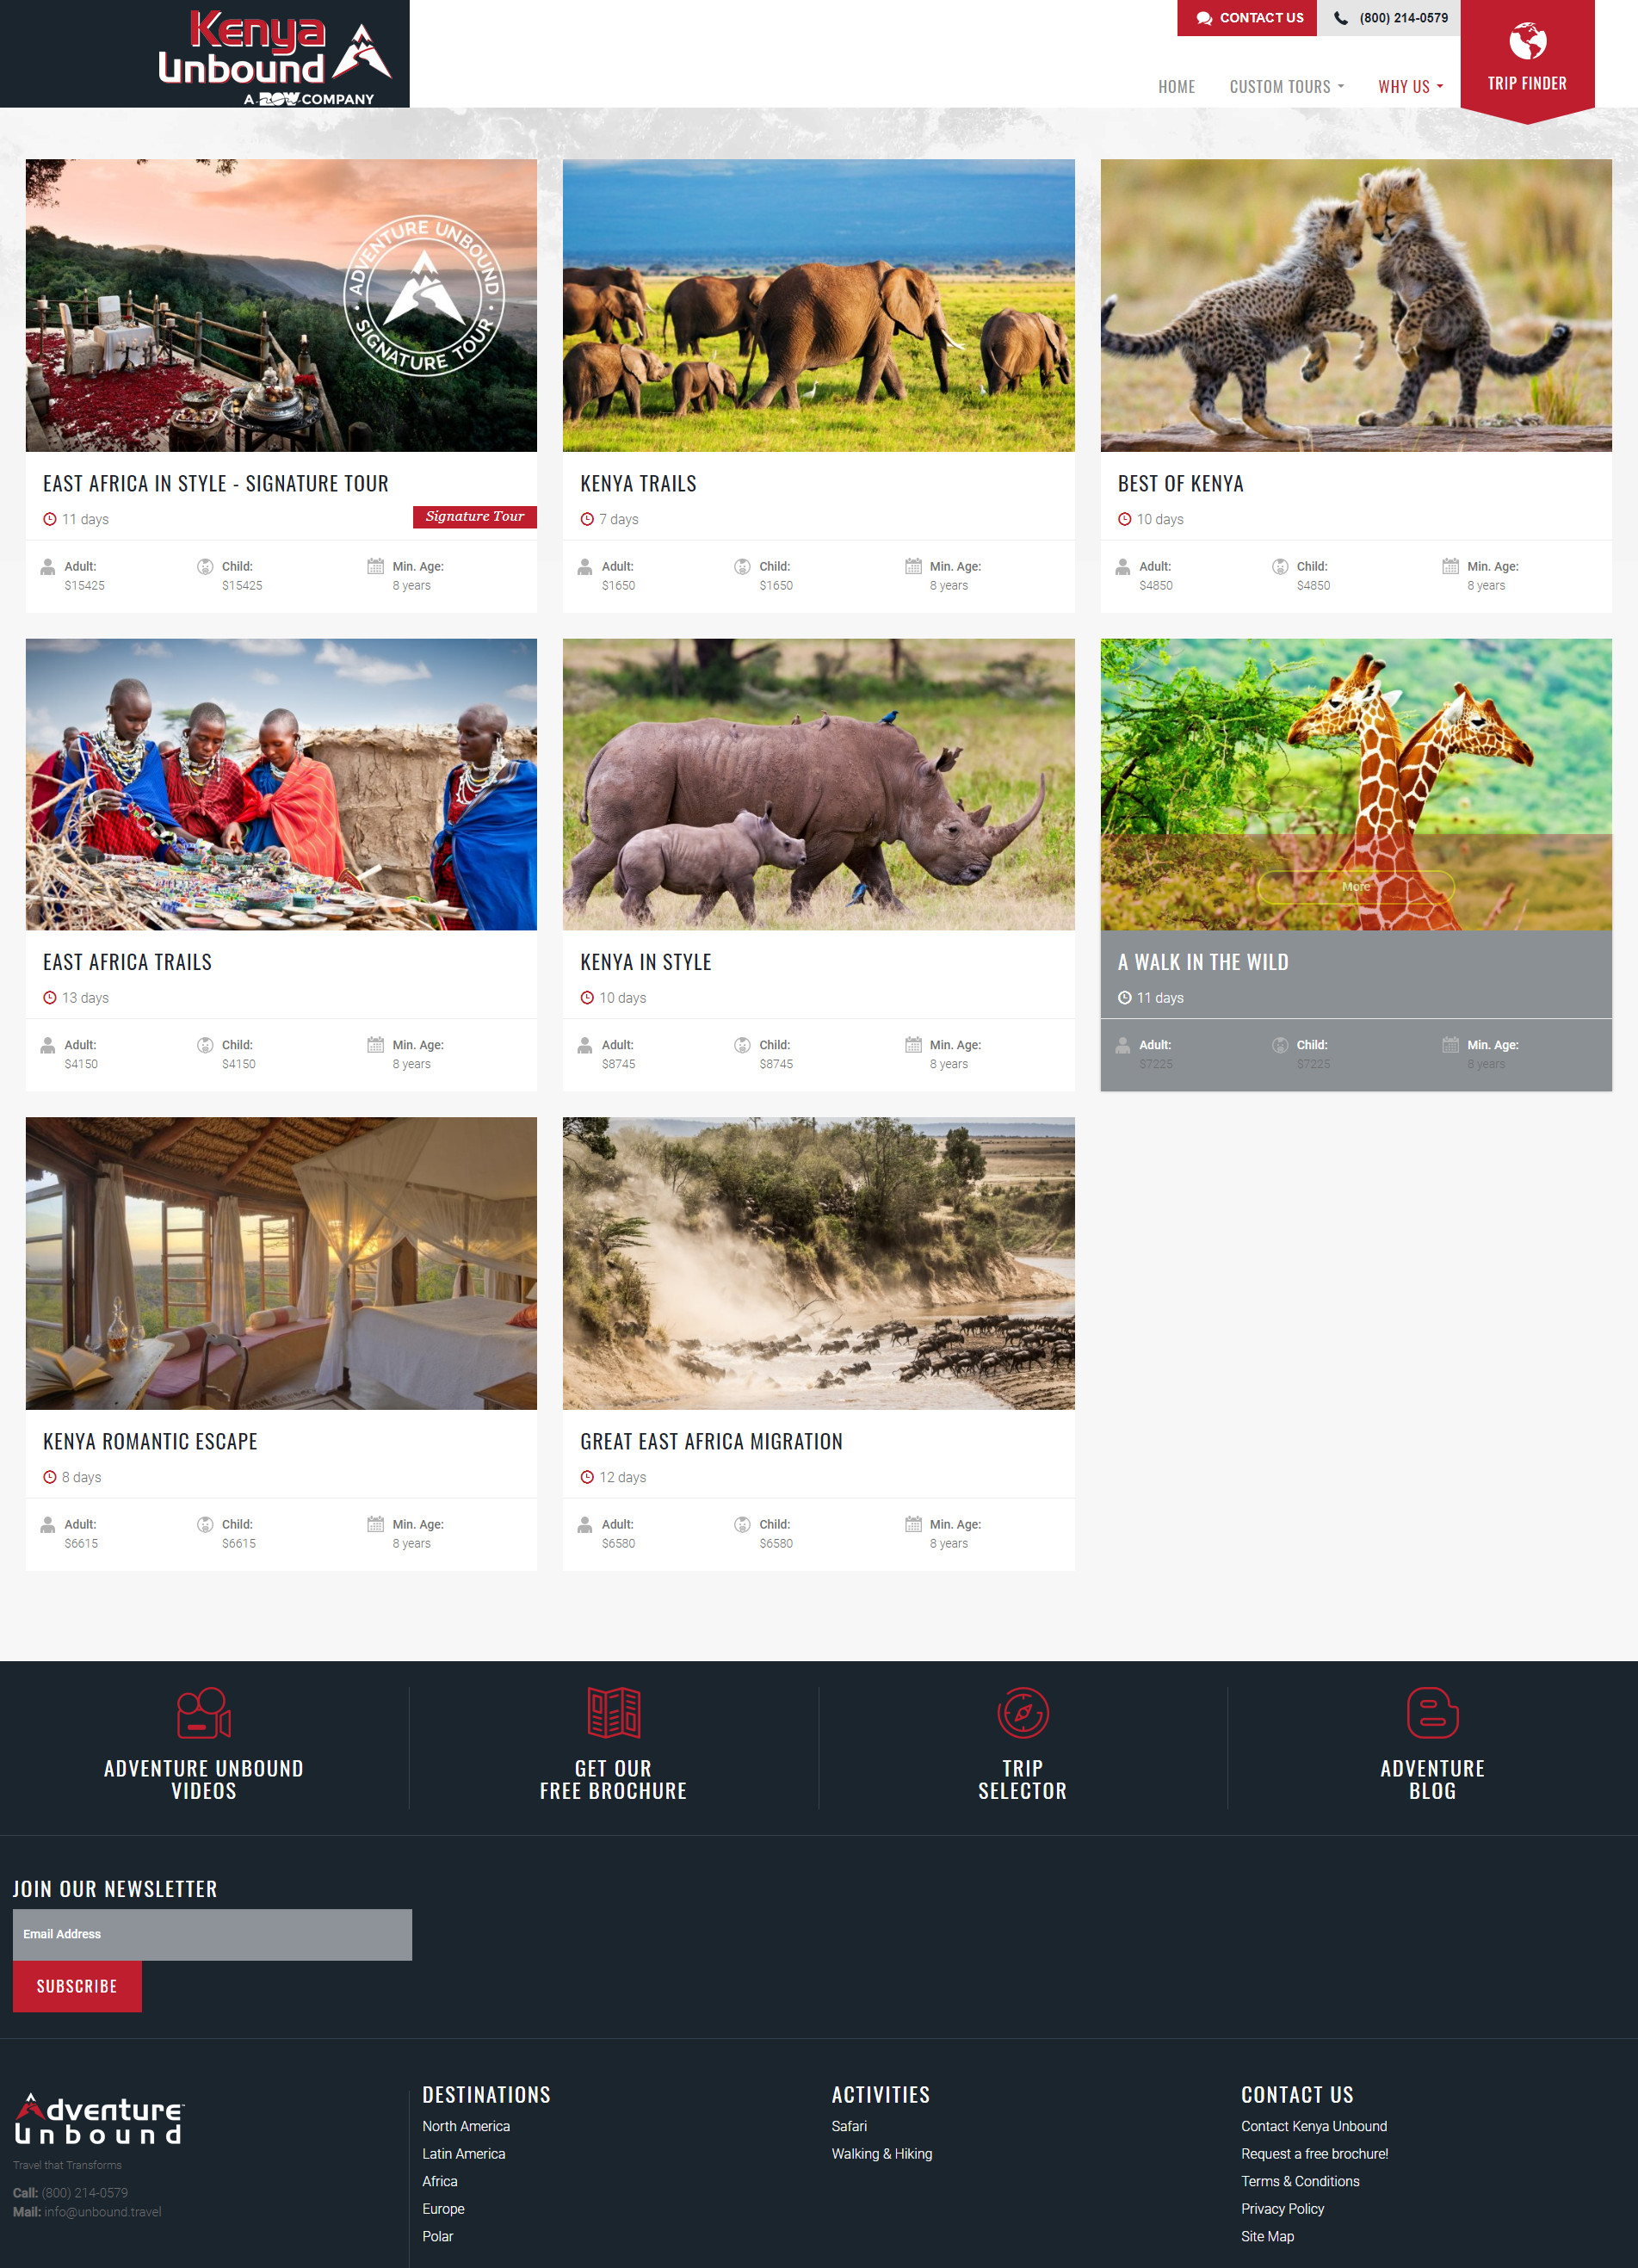 trip layout in the website design for safari tour operators